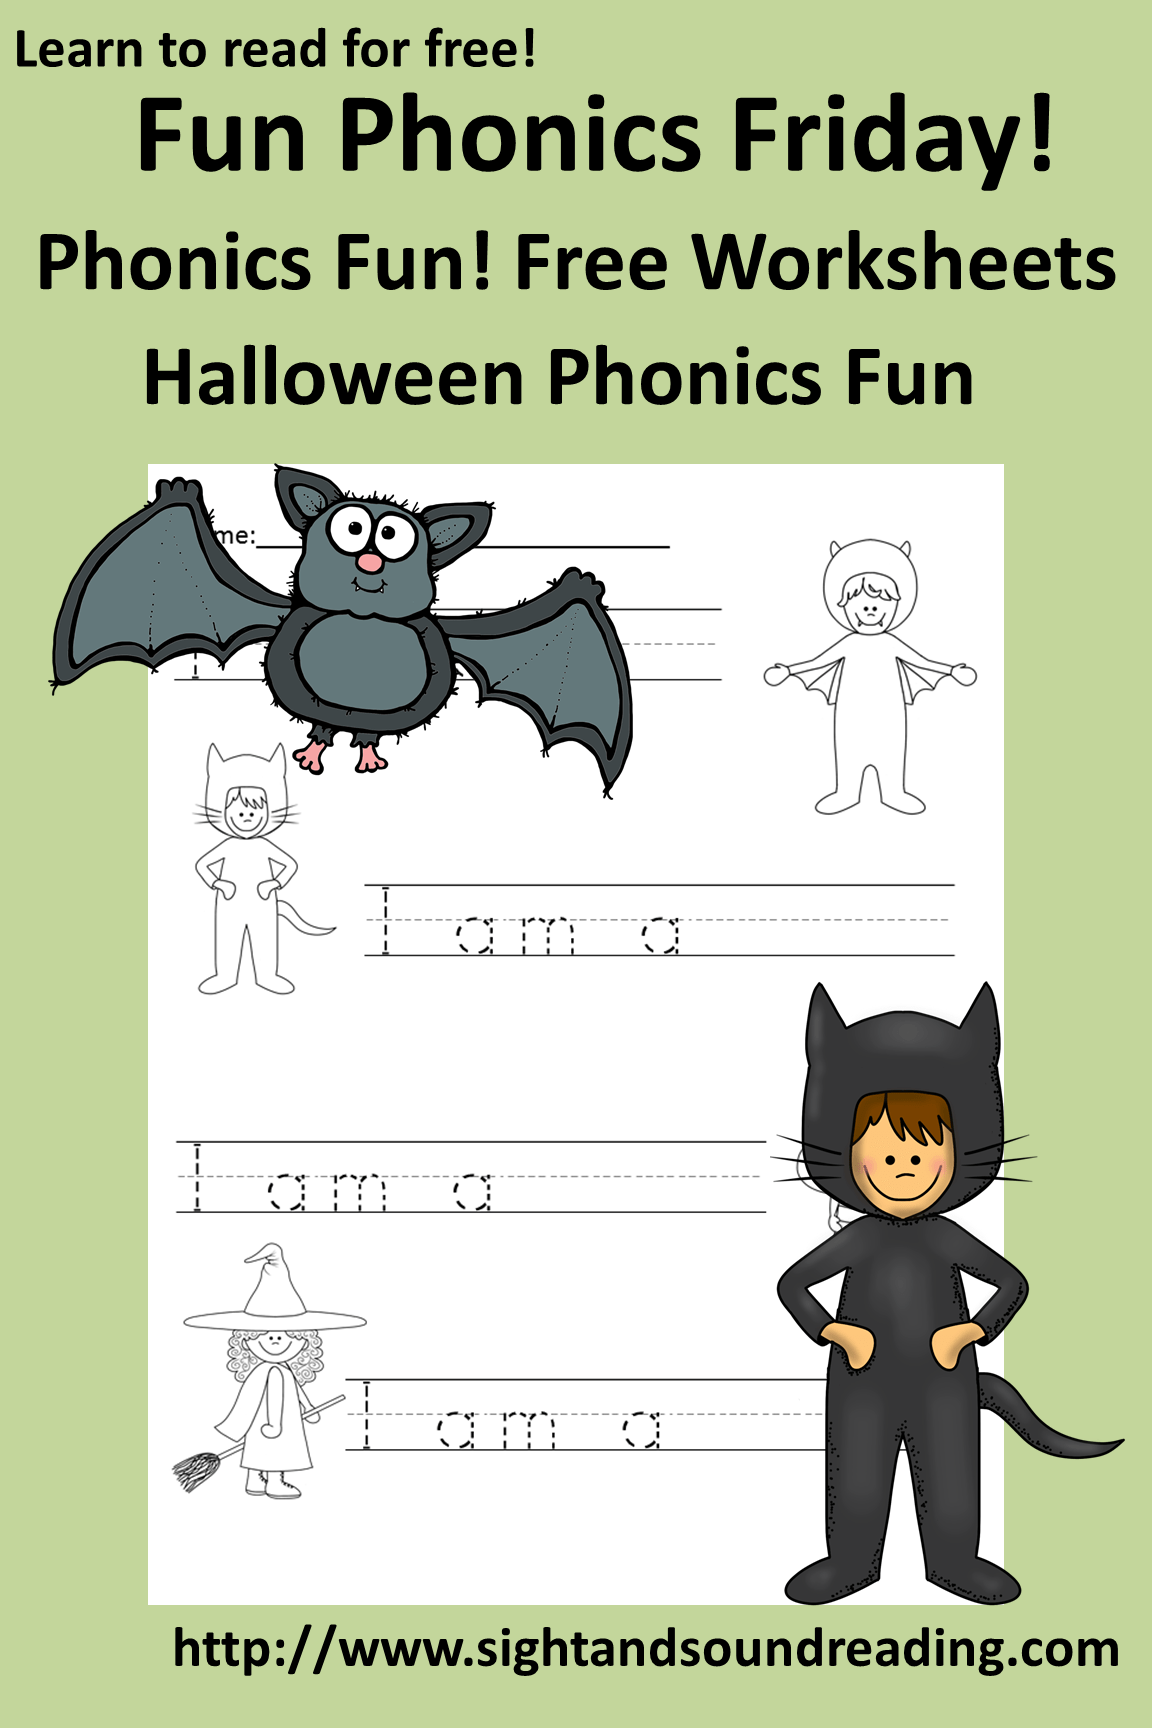 Free Phonics Worksheet For Halloween Fun Activity For